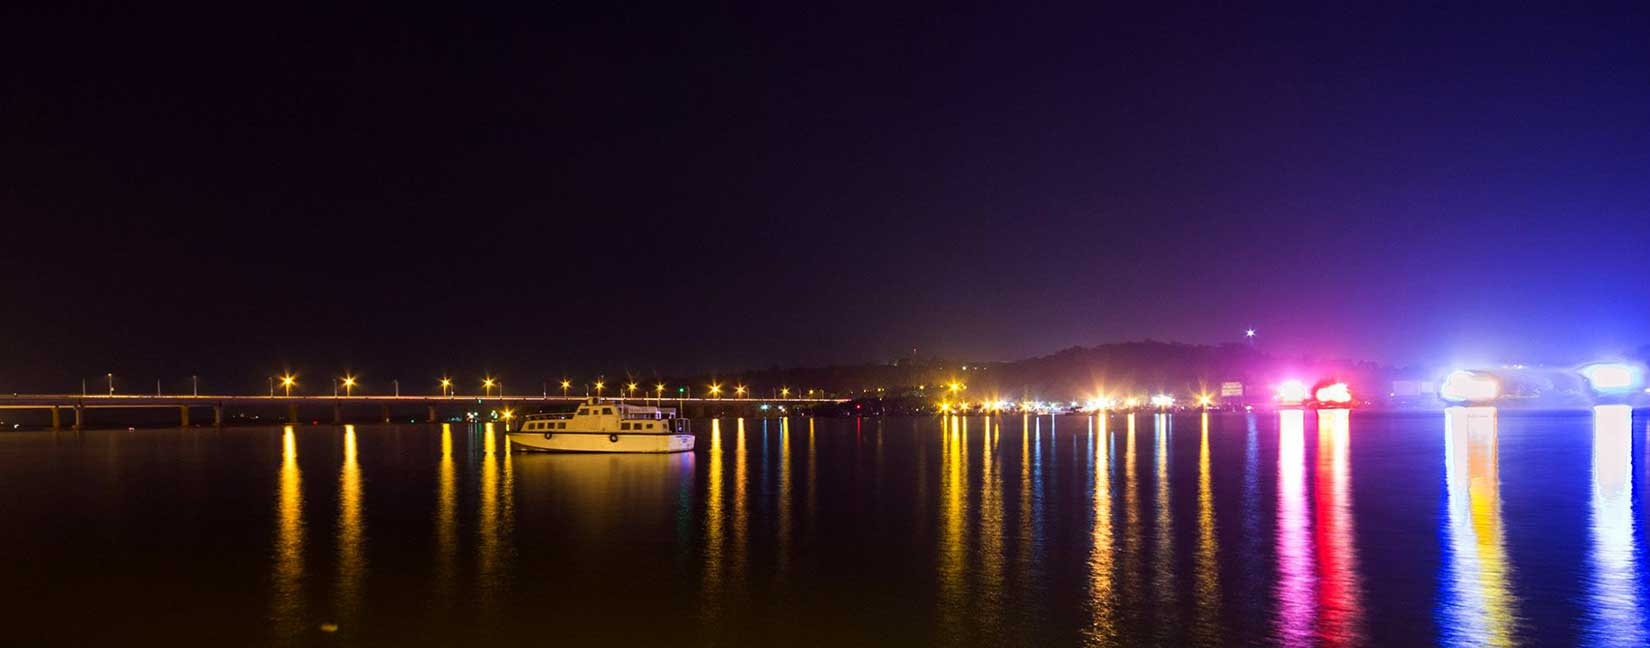 panjim-night-cruise-view-goa